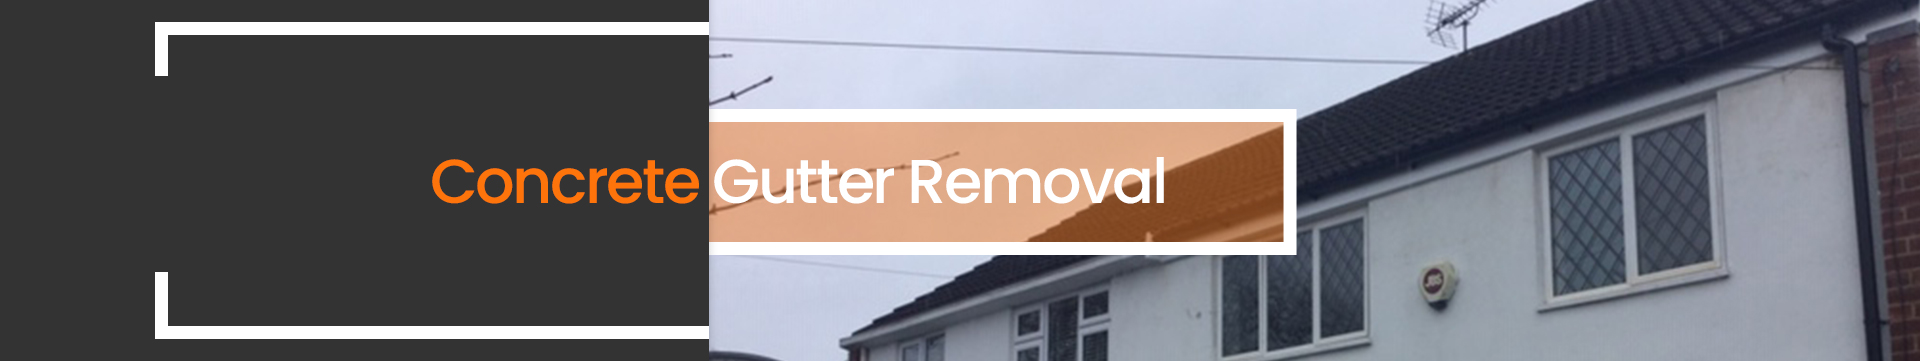 Concrete Gutter Removal Banner